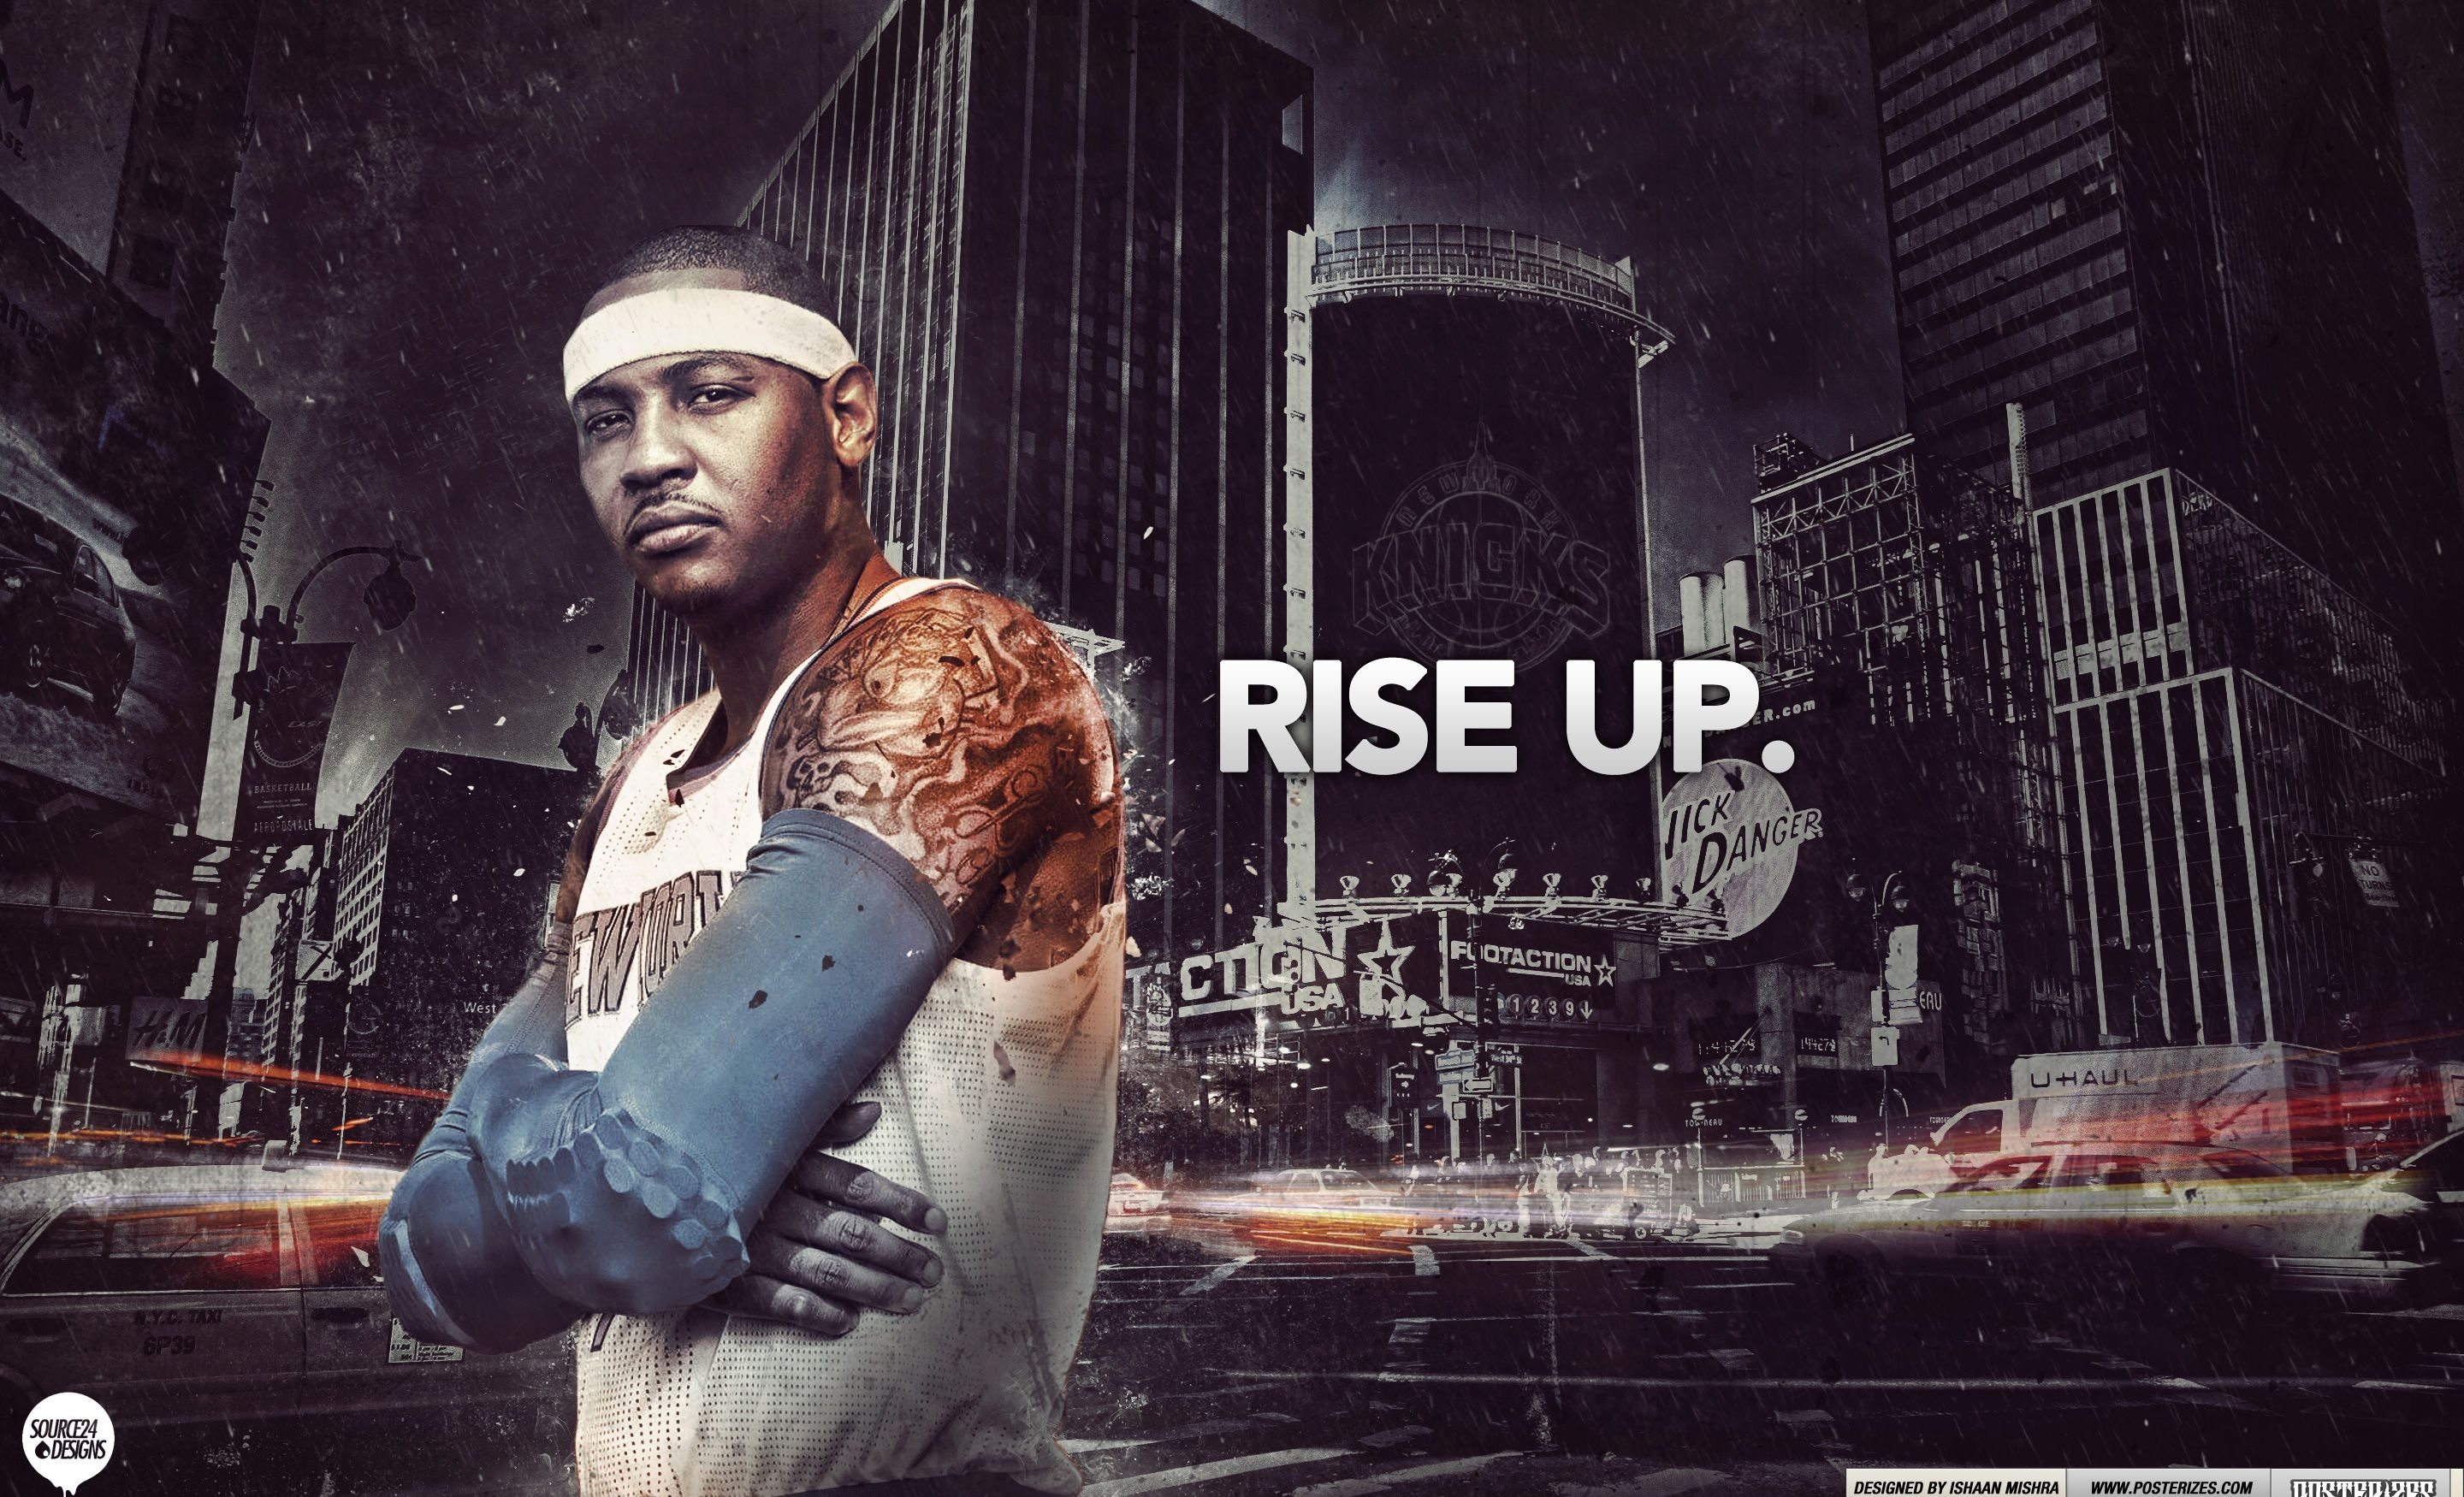 carmelo-anthony-1080p-high-quality-x-kB-wallpaper-wp3403742